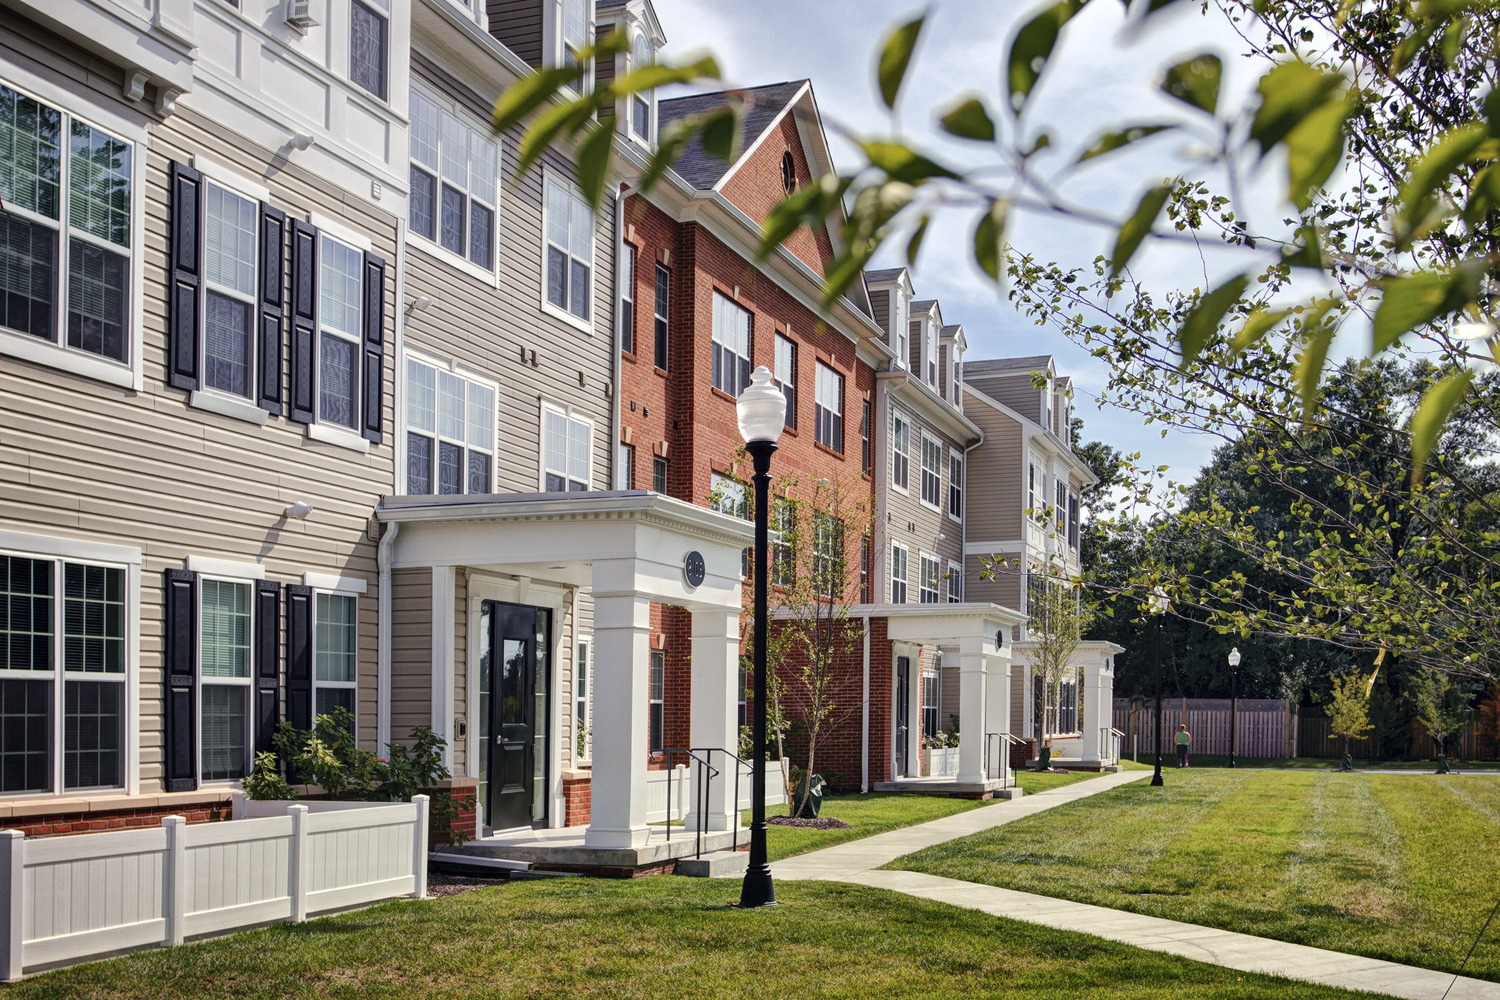 CBG builds Creekstone Village Apartments Phase II, a 156 Garden-Style Apartments and Townhomes with Recreation Center in Pasadena, MD - Image #3